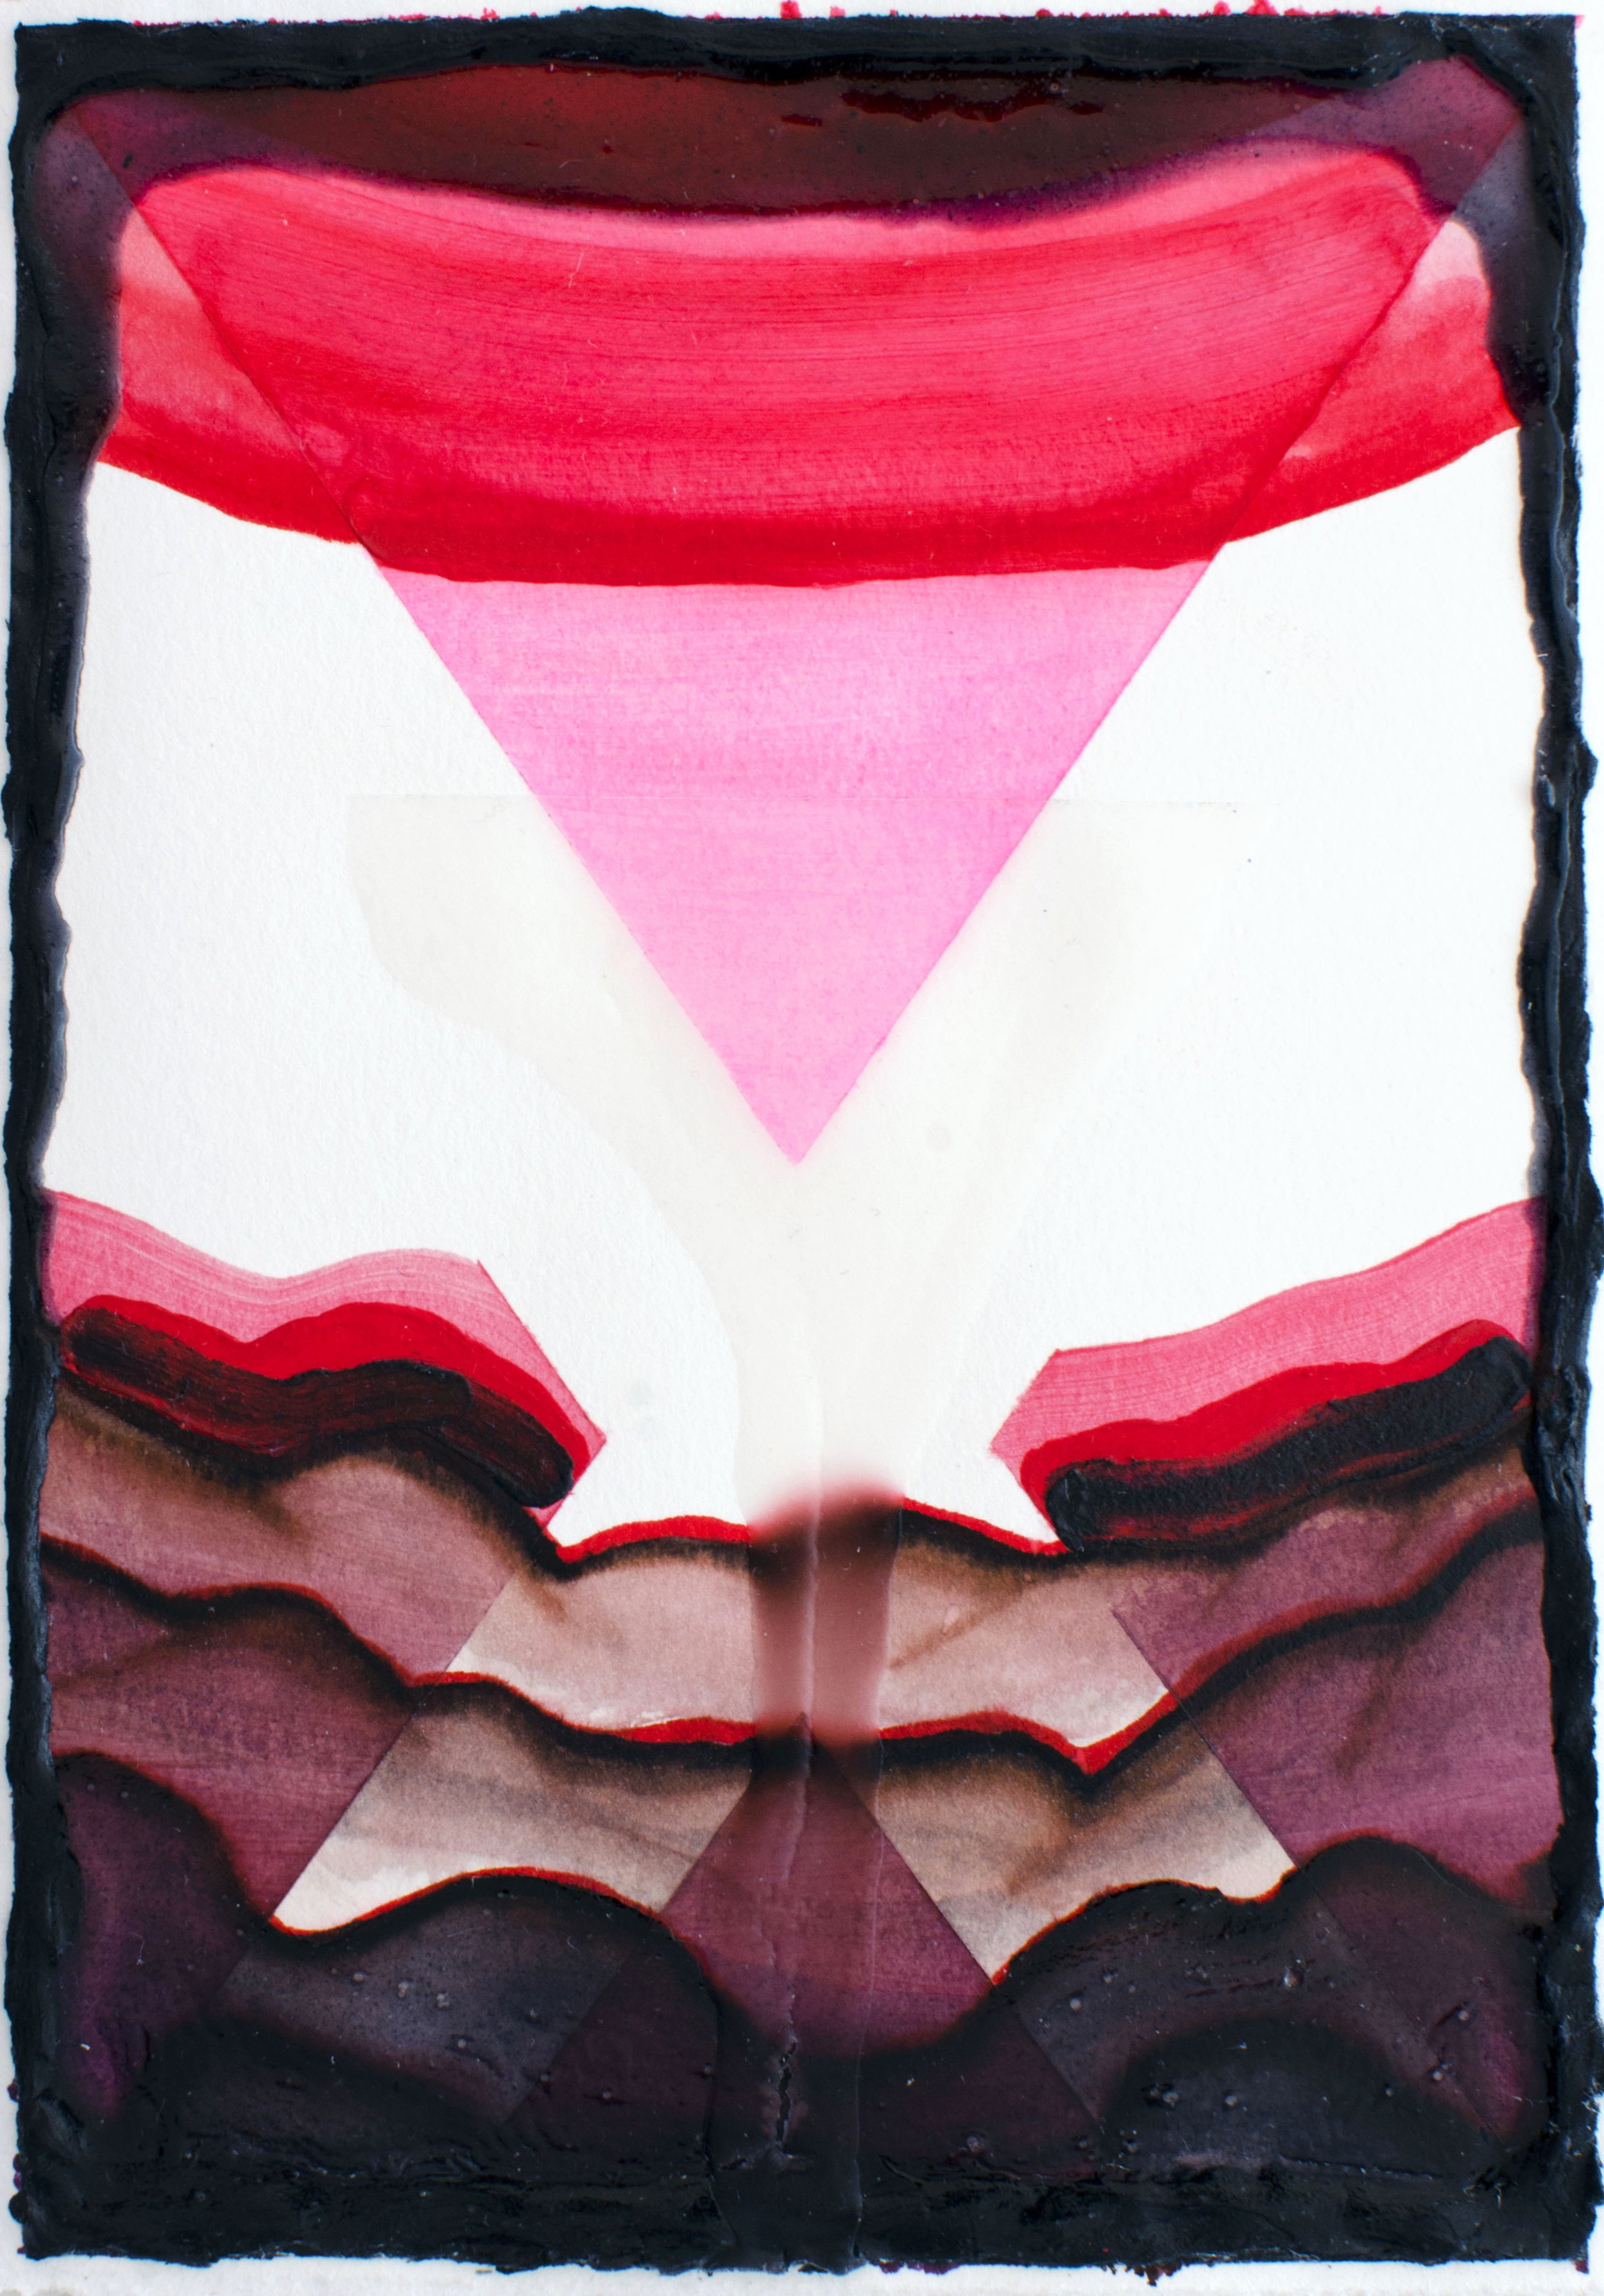 """Down - Elise Thompson7"""" x 5"""" watercolor, acrylic, and glass beads on paper, framed$175"""